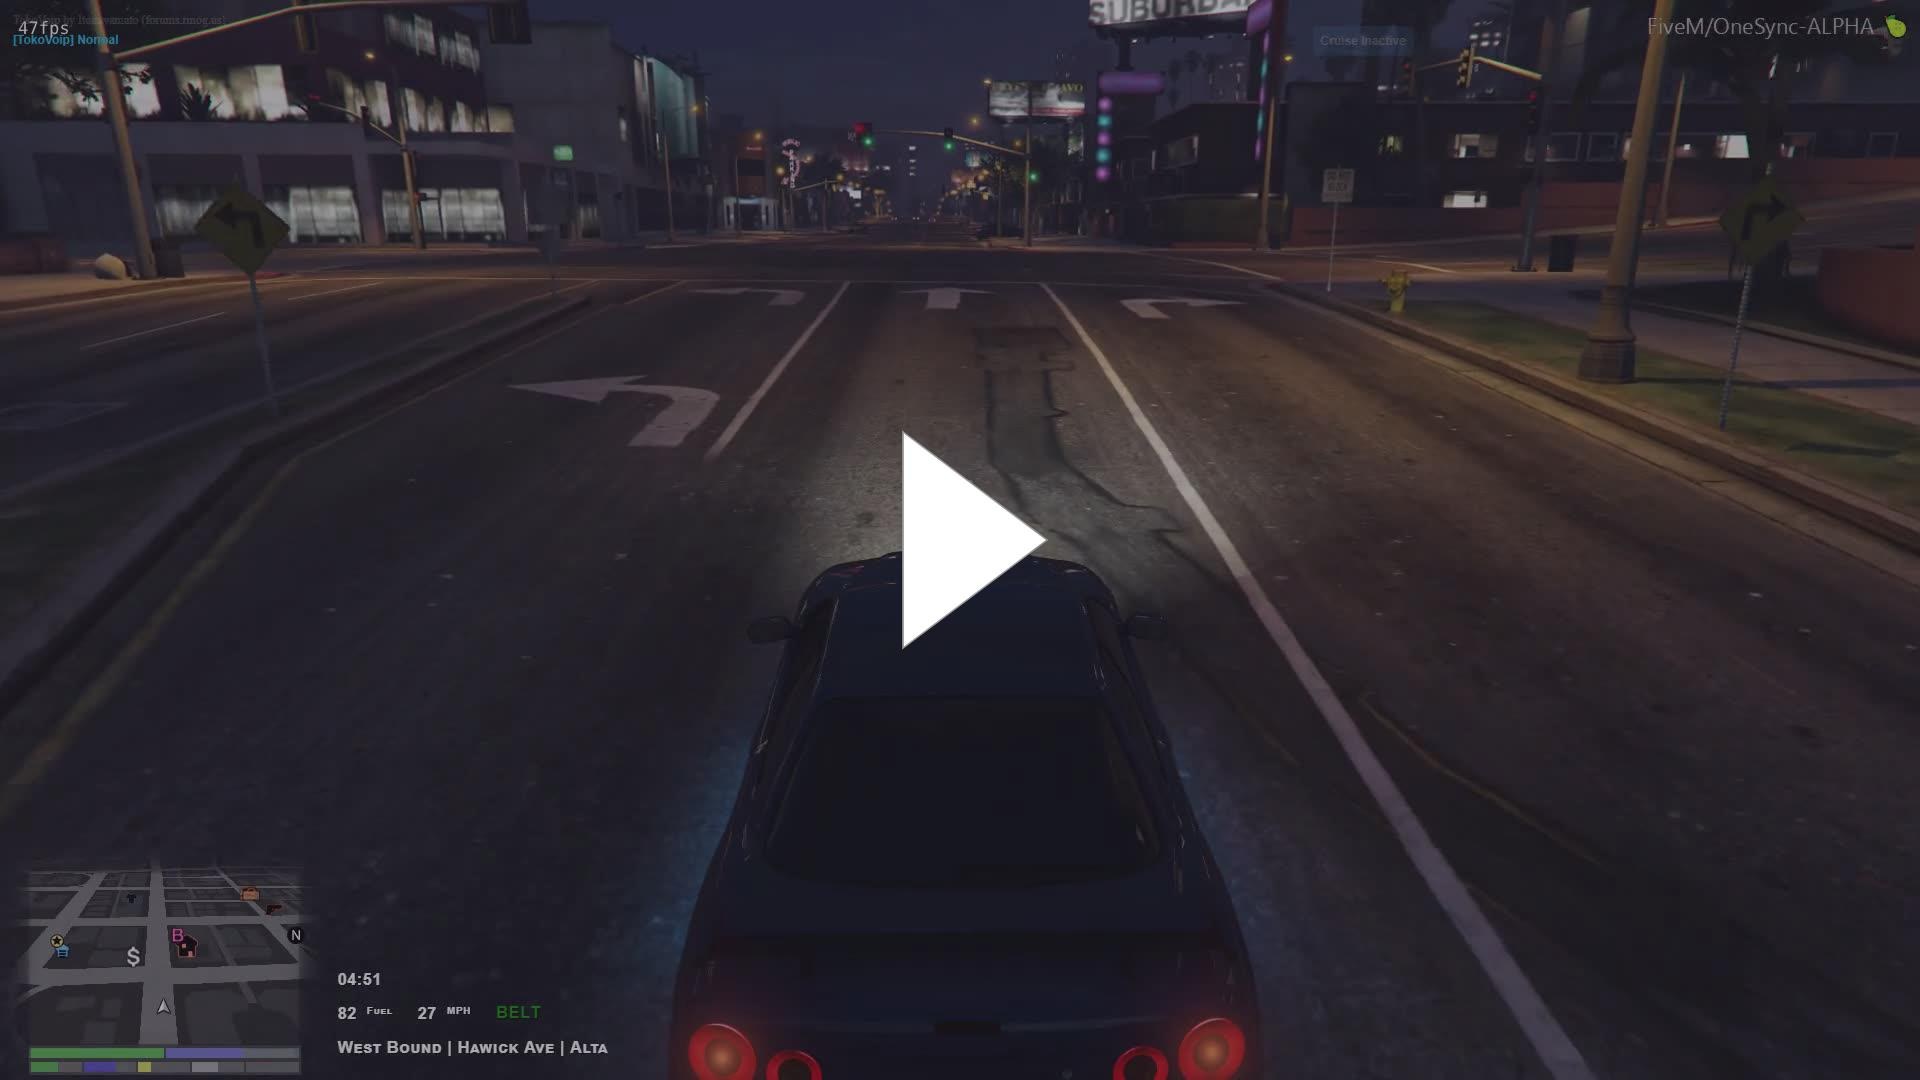 koil - gangs to 4 members - Twitch